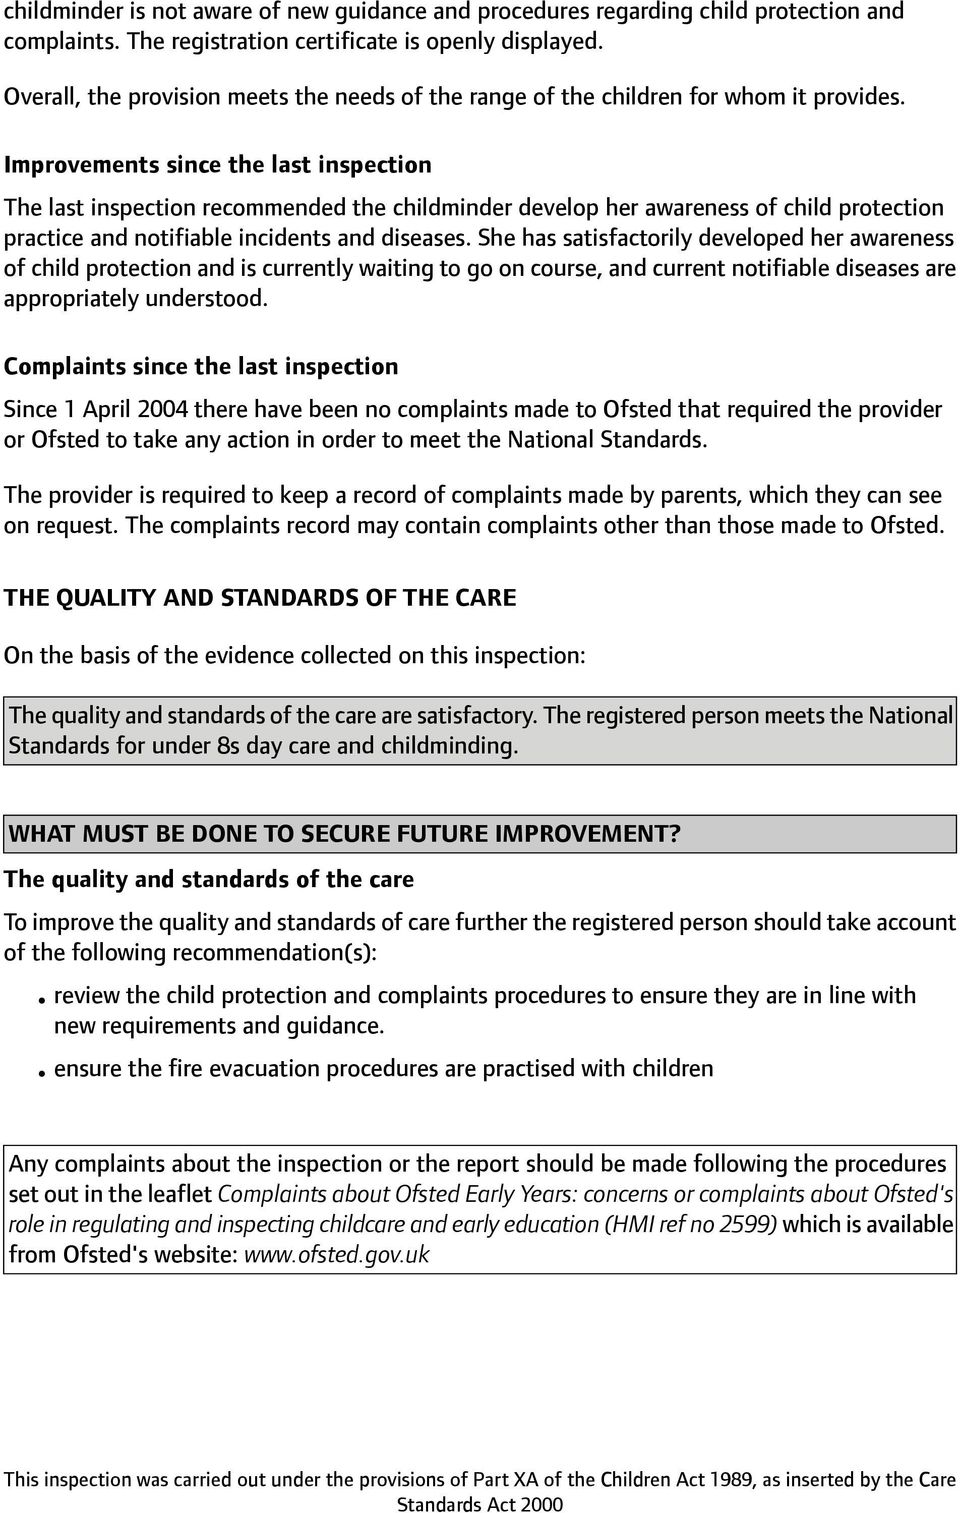 Improvements since the last inspection The last inspection recommended the childminder develop her awareness of child protection practice and notifiable incidents and diseases.